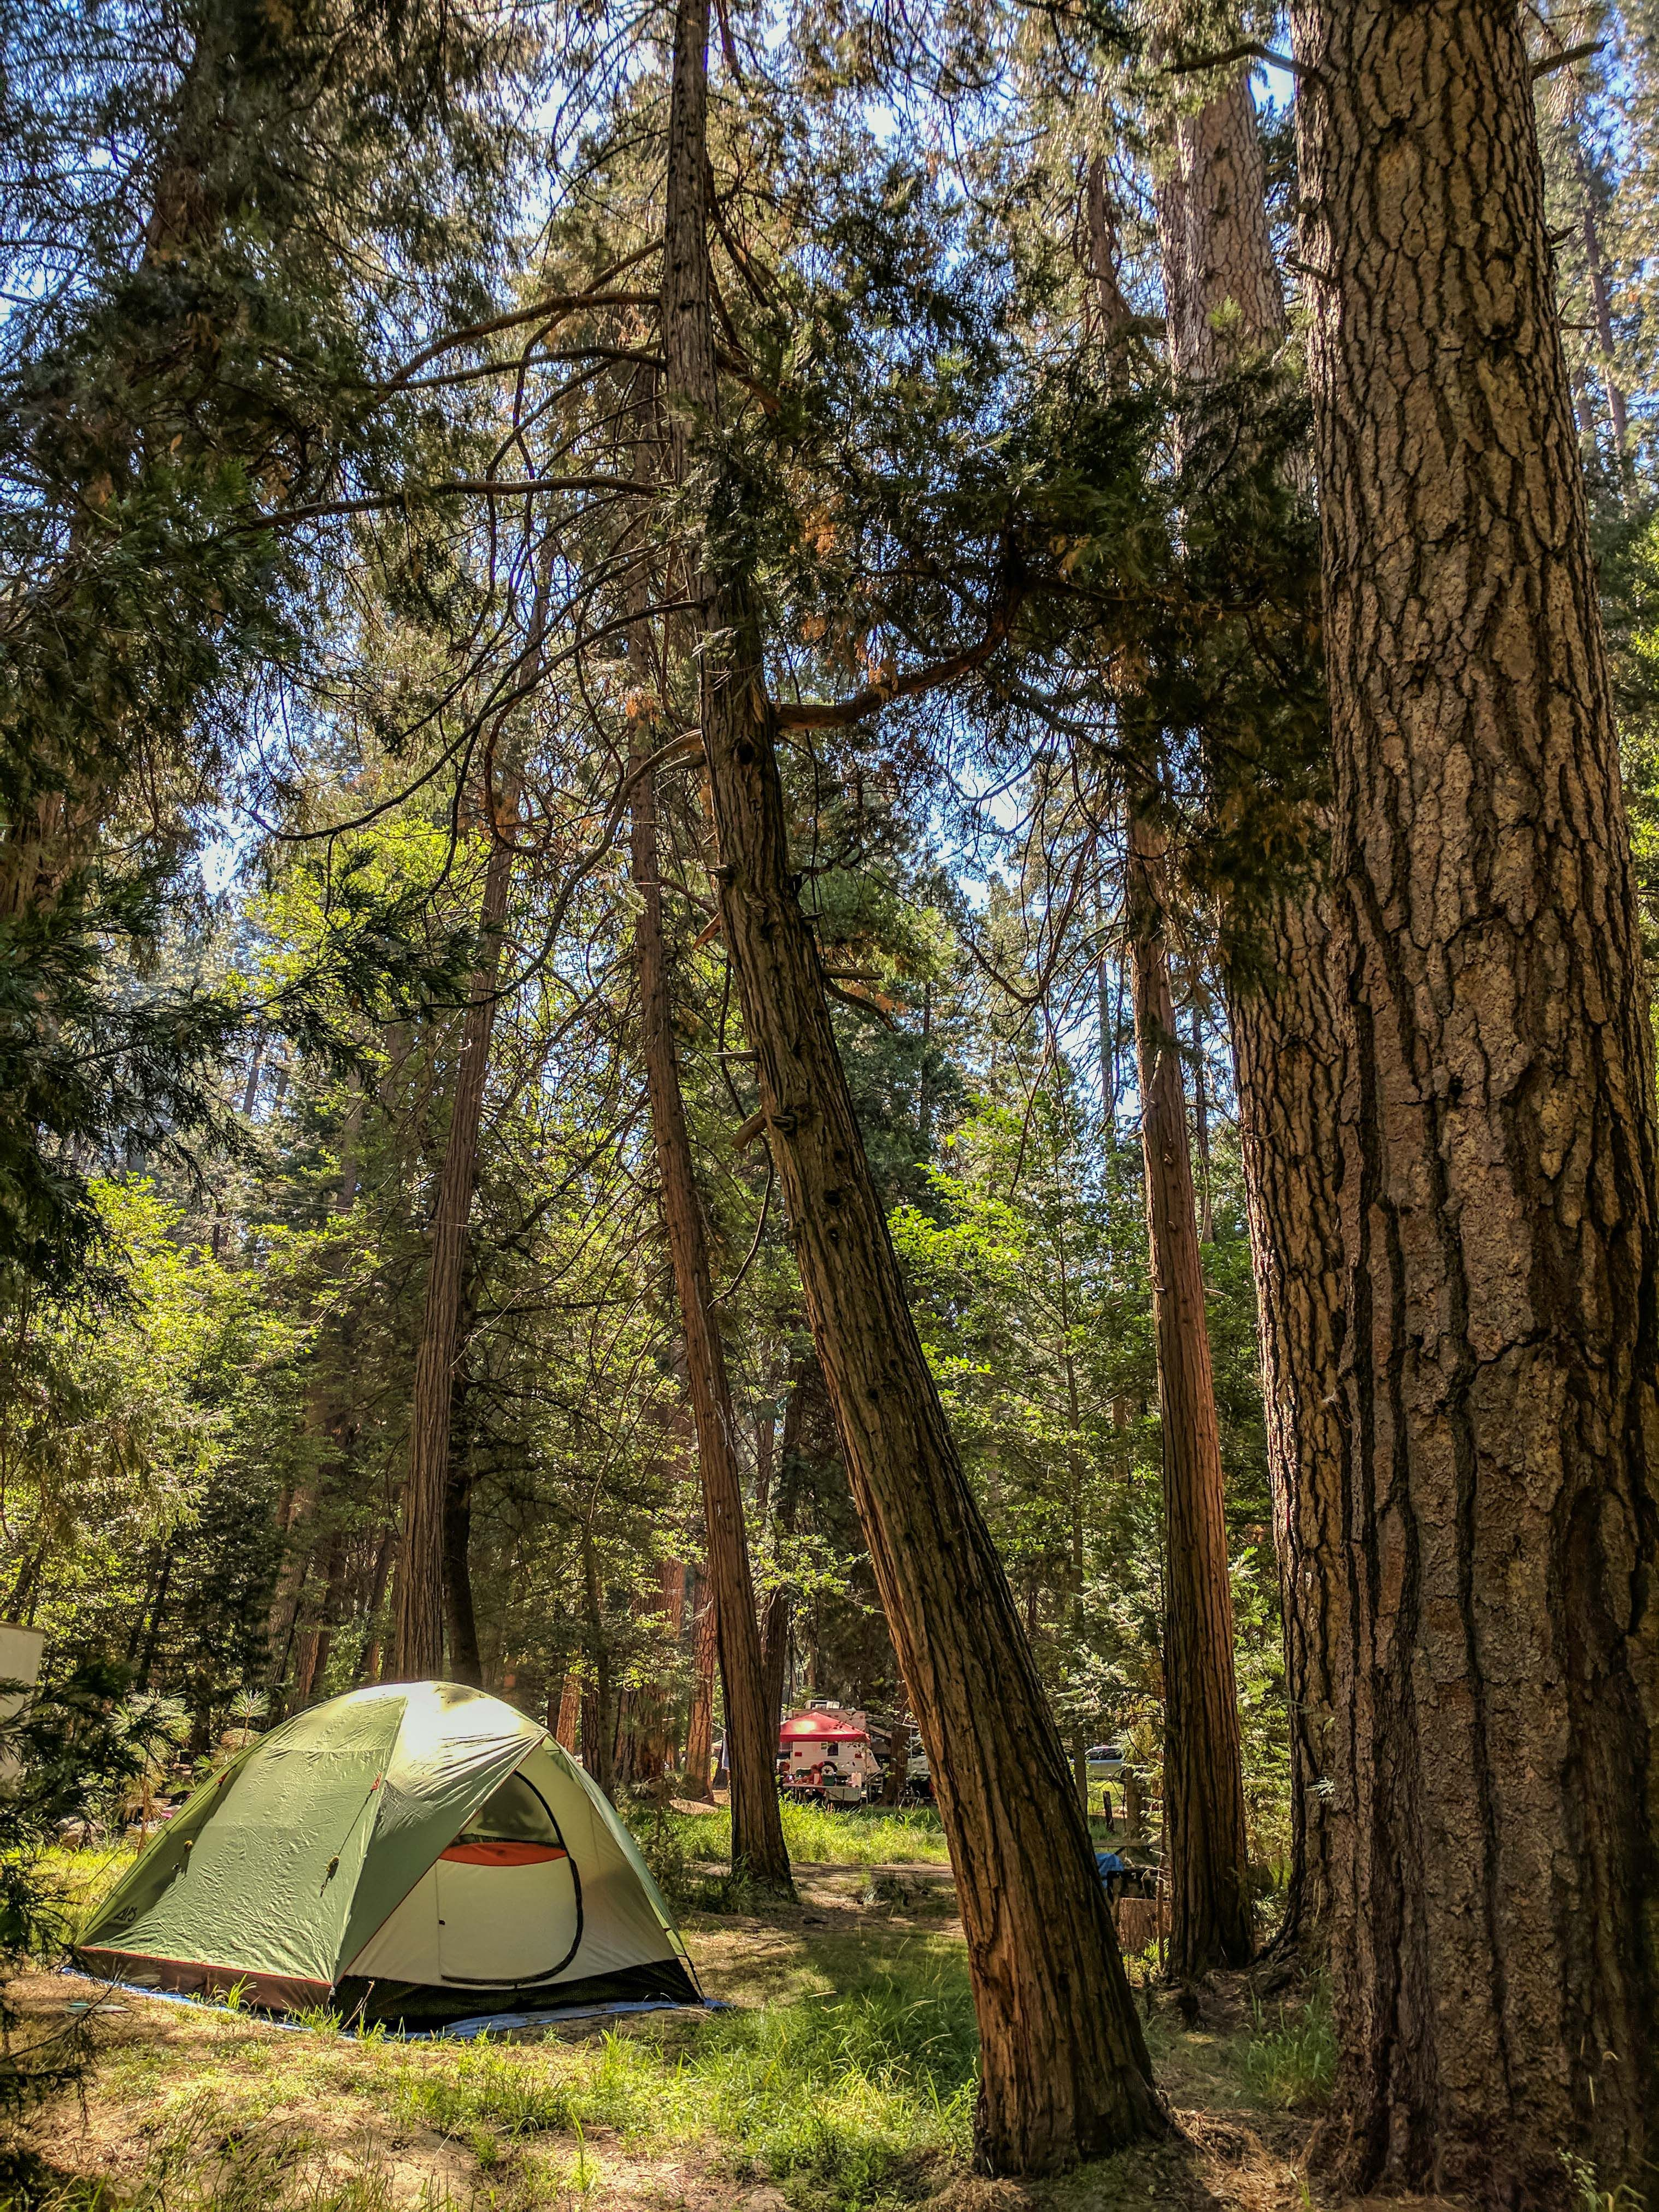 My camping setup for living for three months in a tent in ...